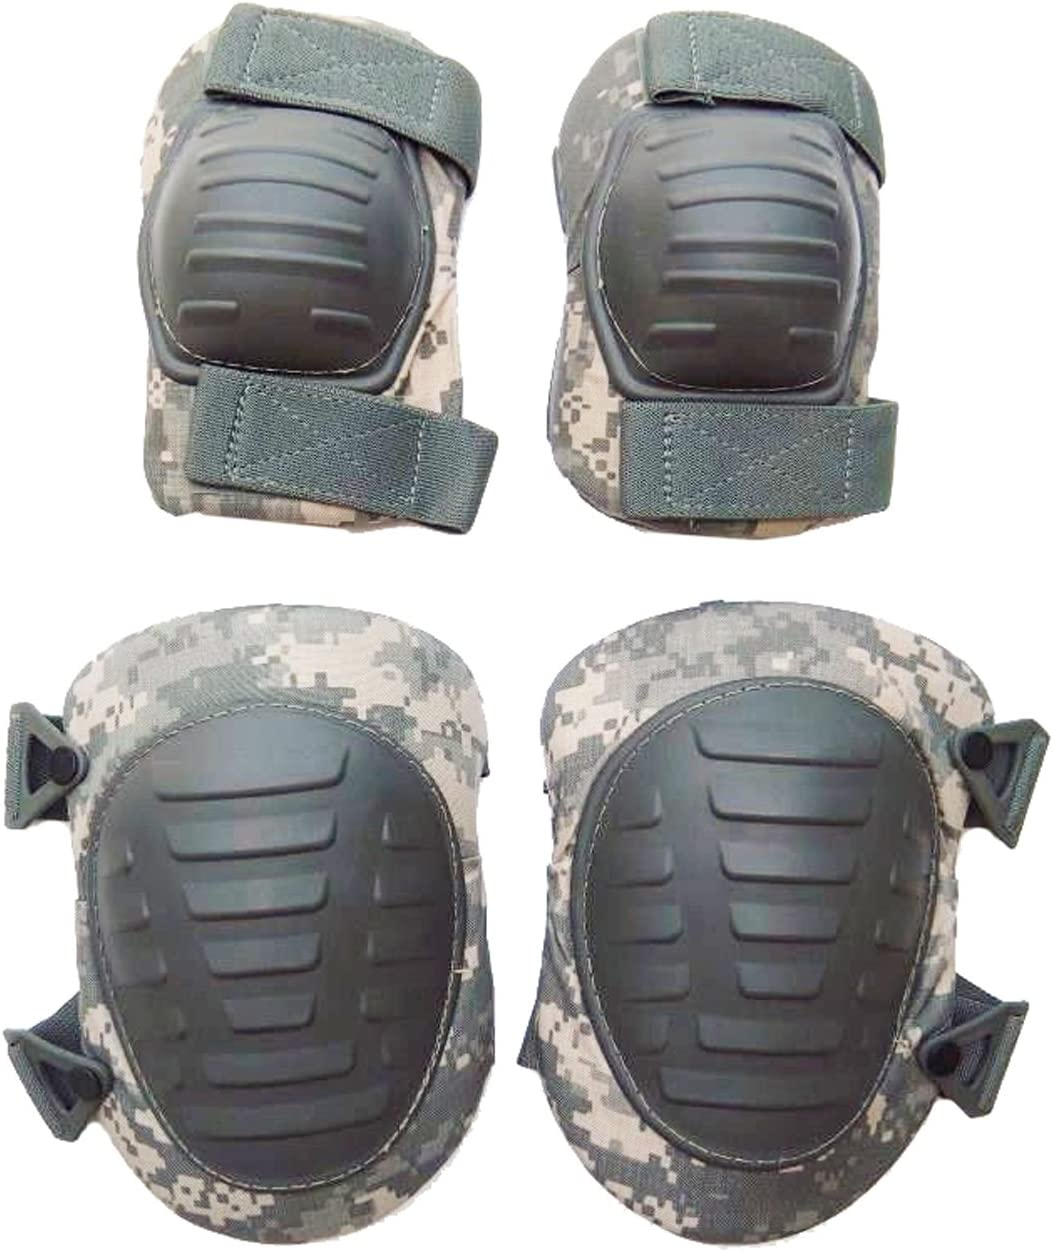 Image of knee pads and elbow pads by Military Outdoor Clothing, in camouflage color.